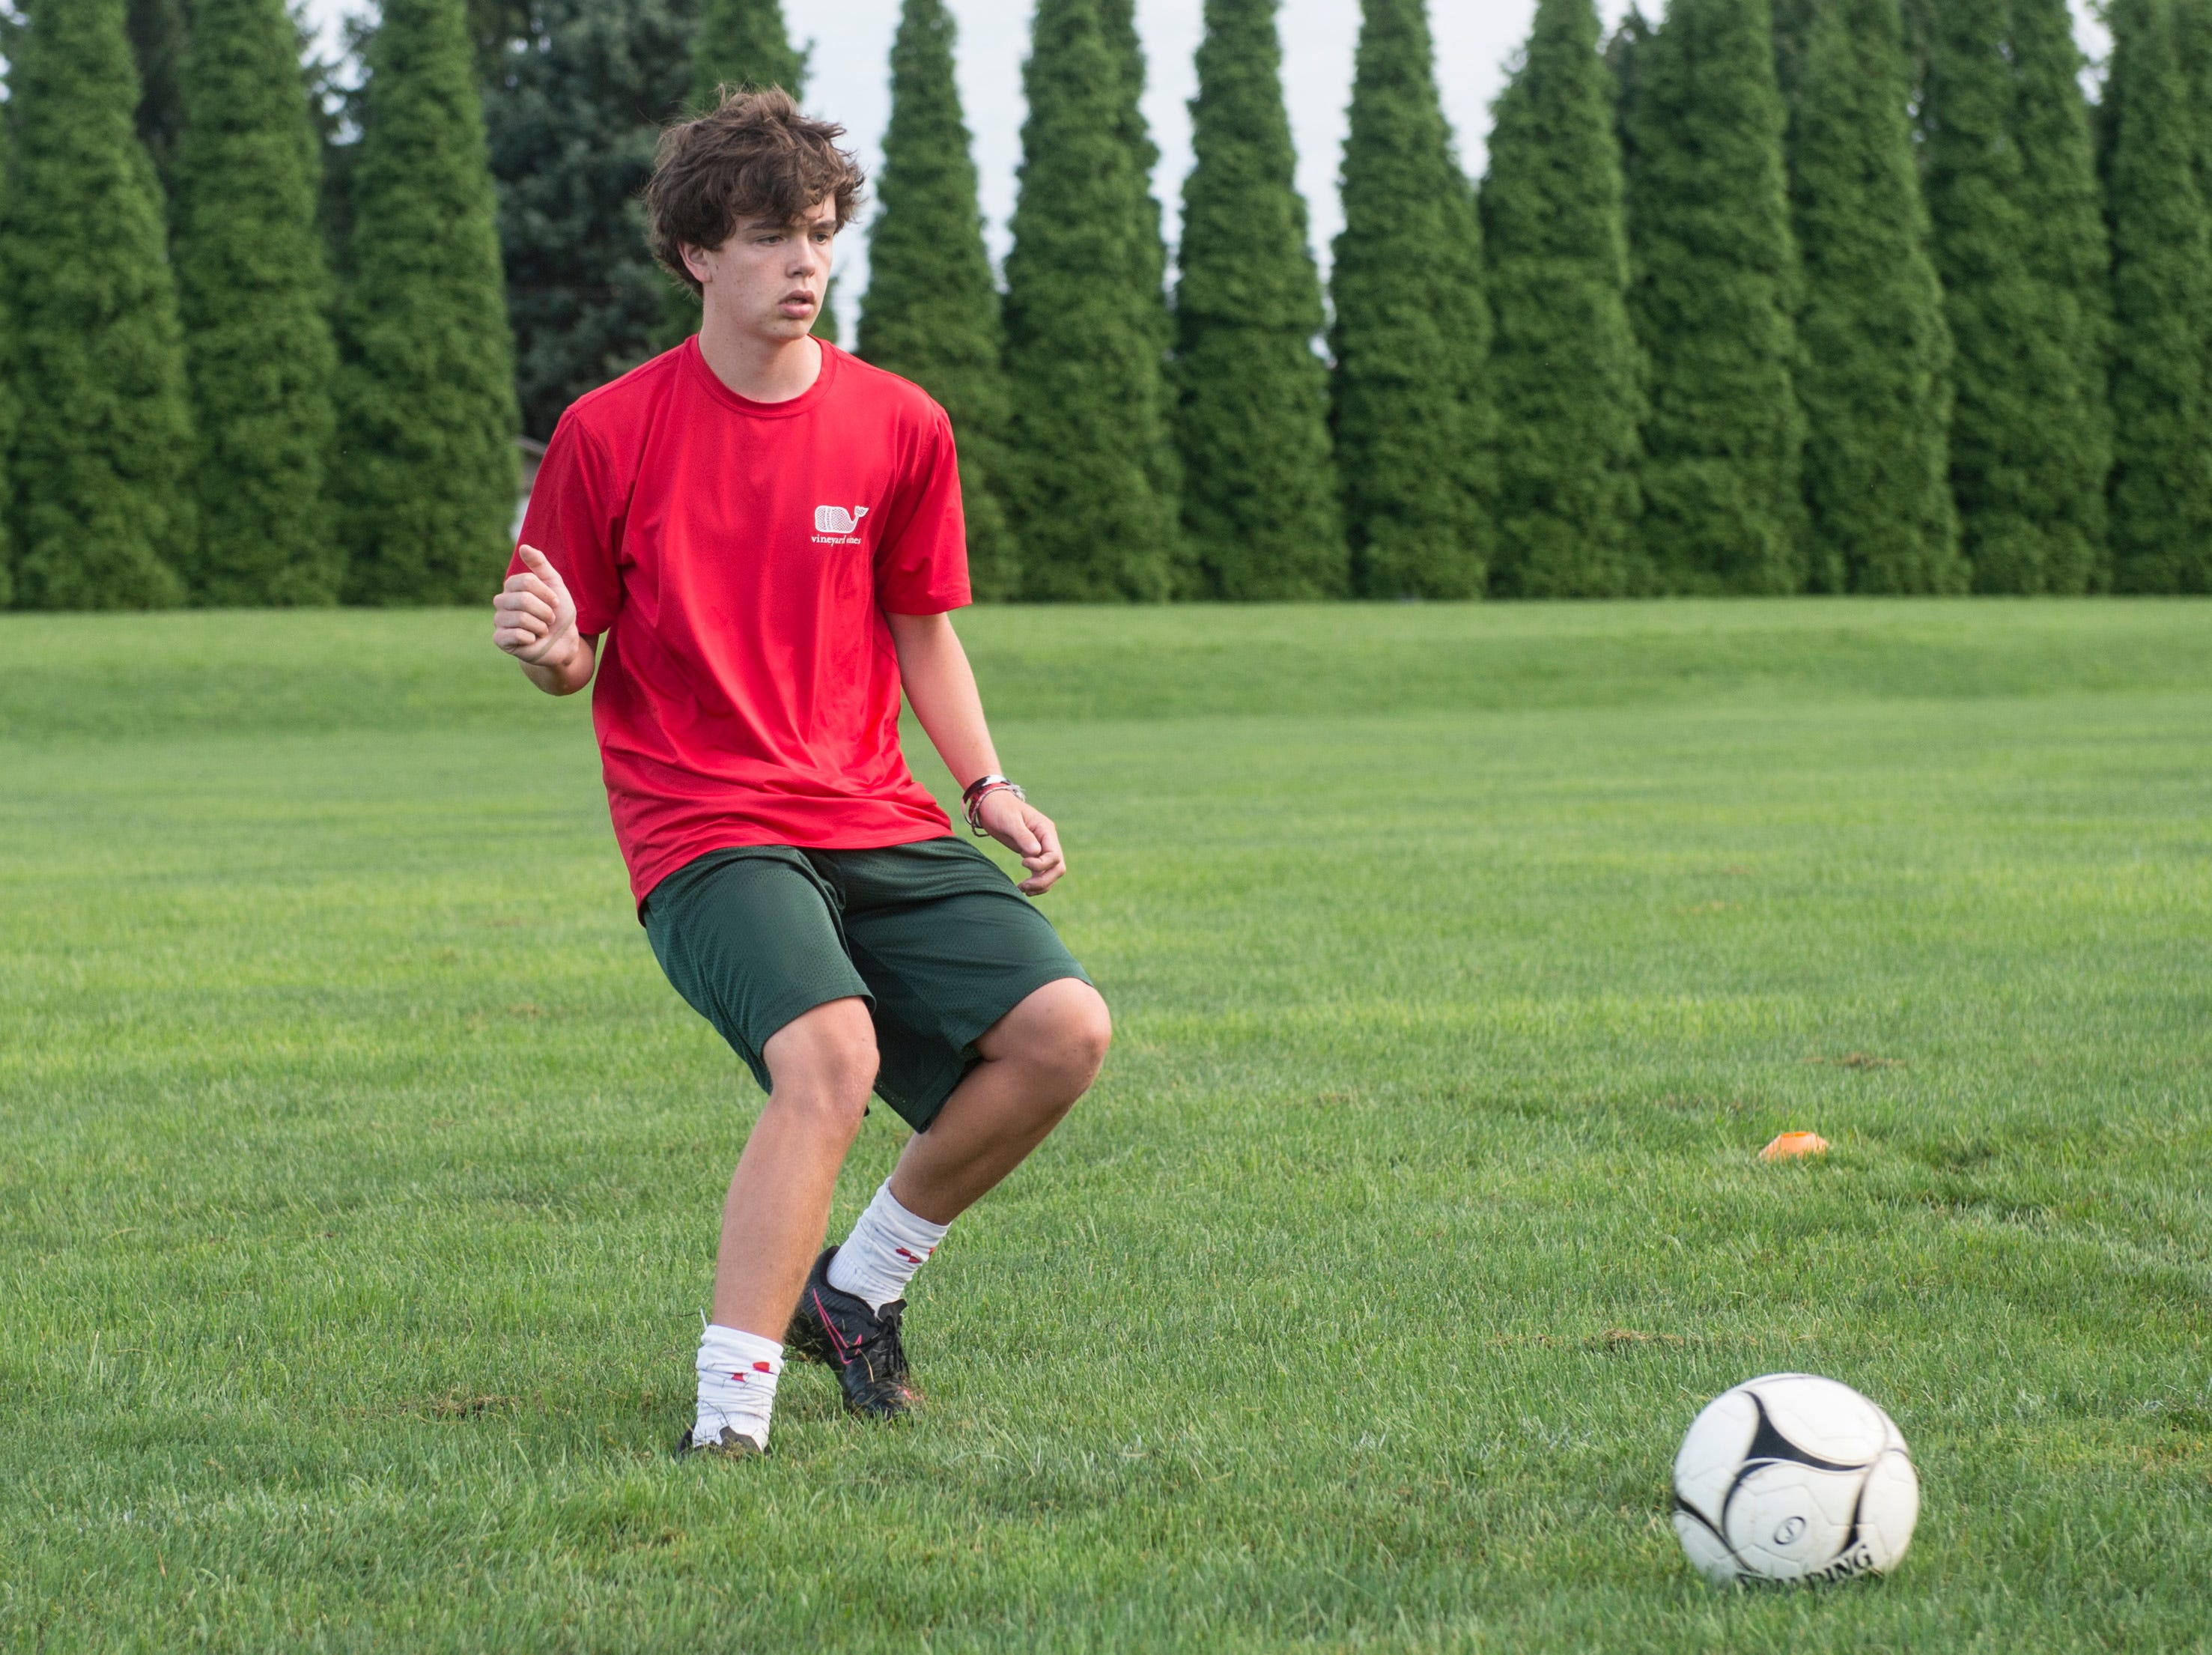 A York Catholic boys' soccer player works through a passing and agility drill on the first day of fall practice.